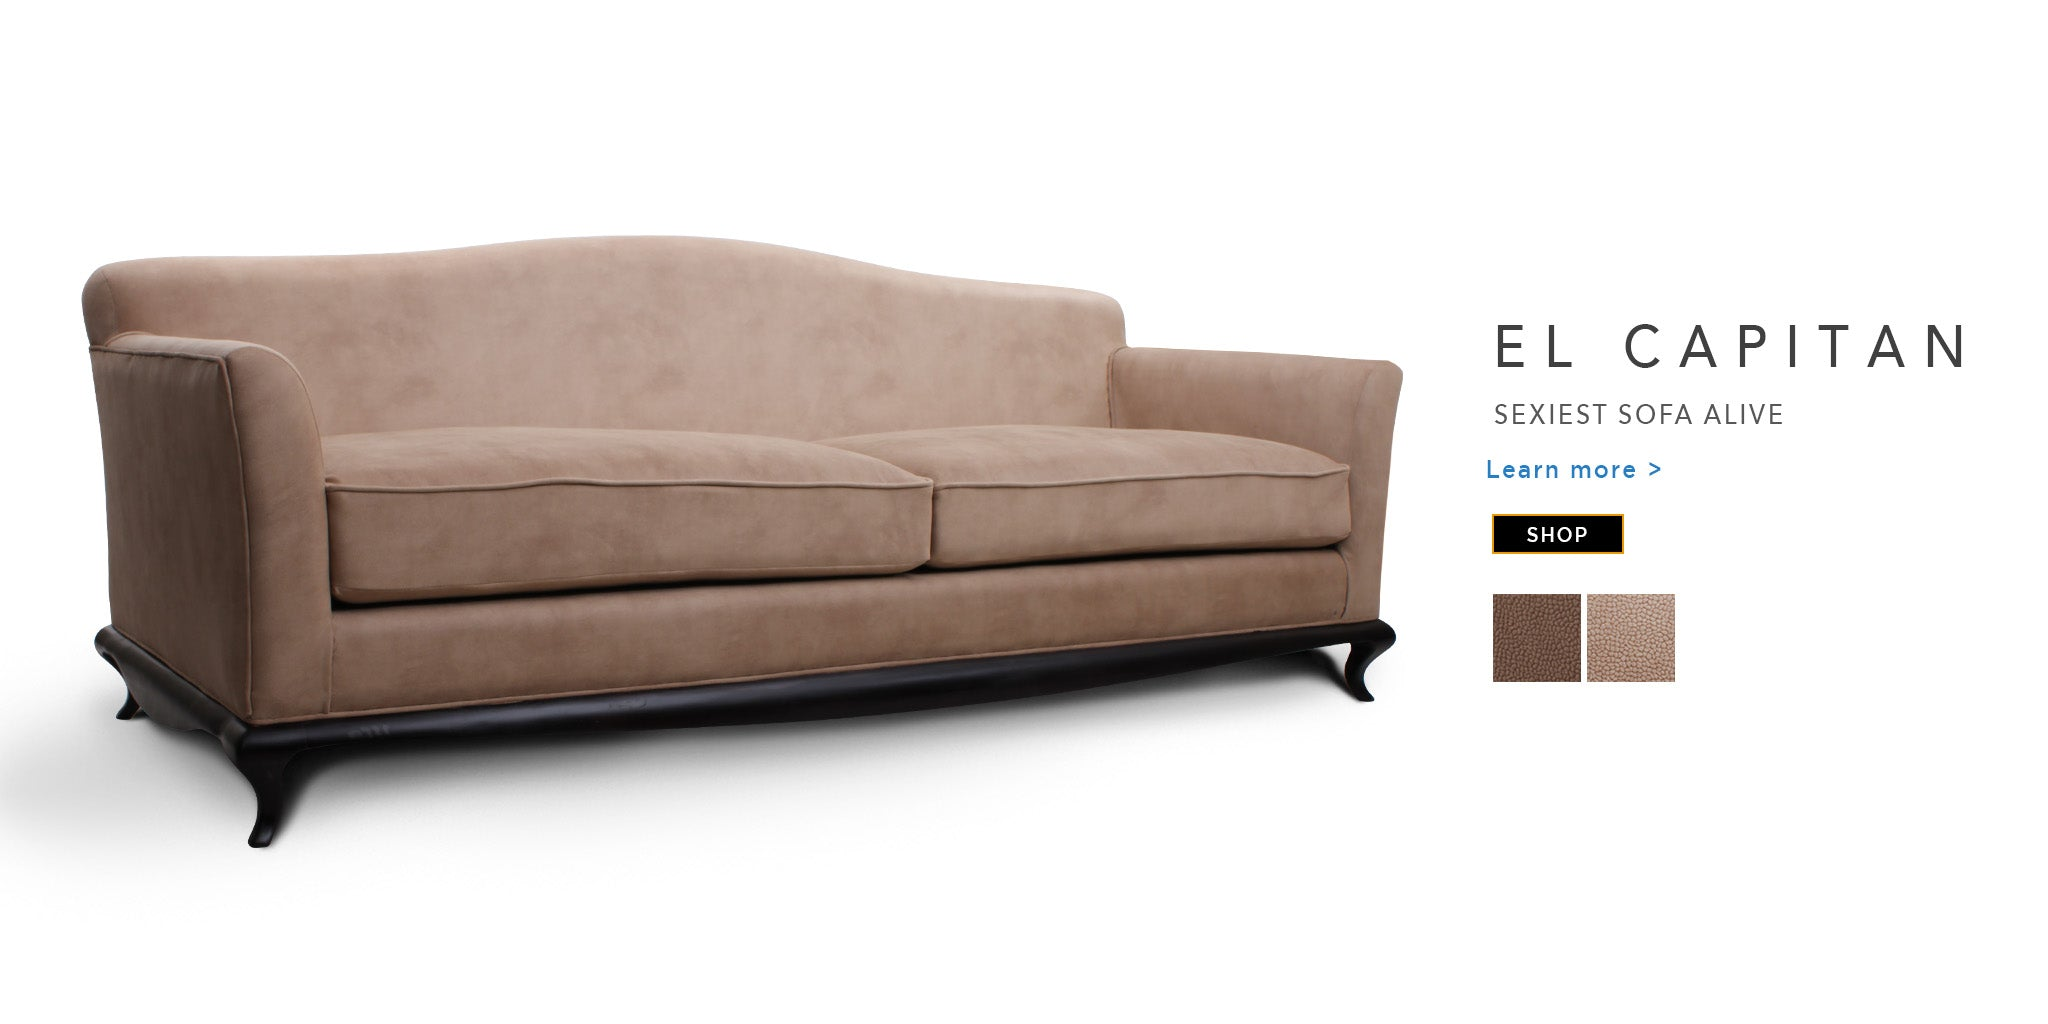 Counter Culture Fabric Sofa El Capitan catalogue page